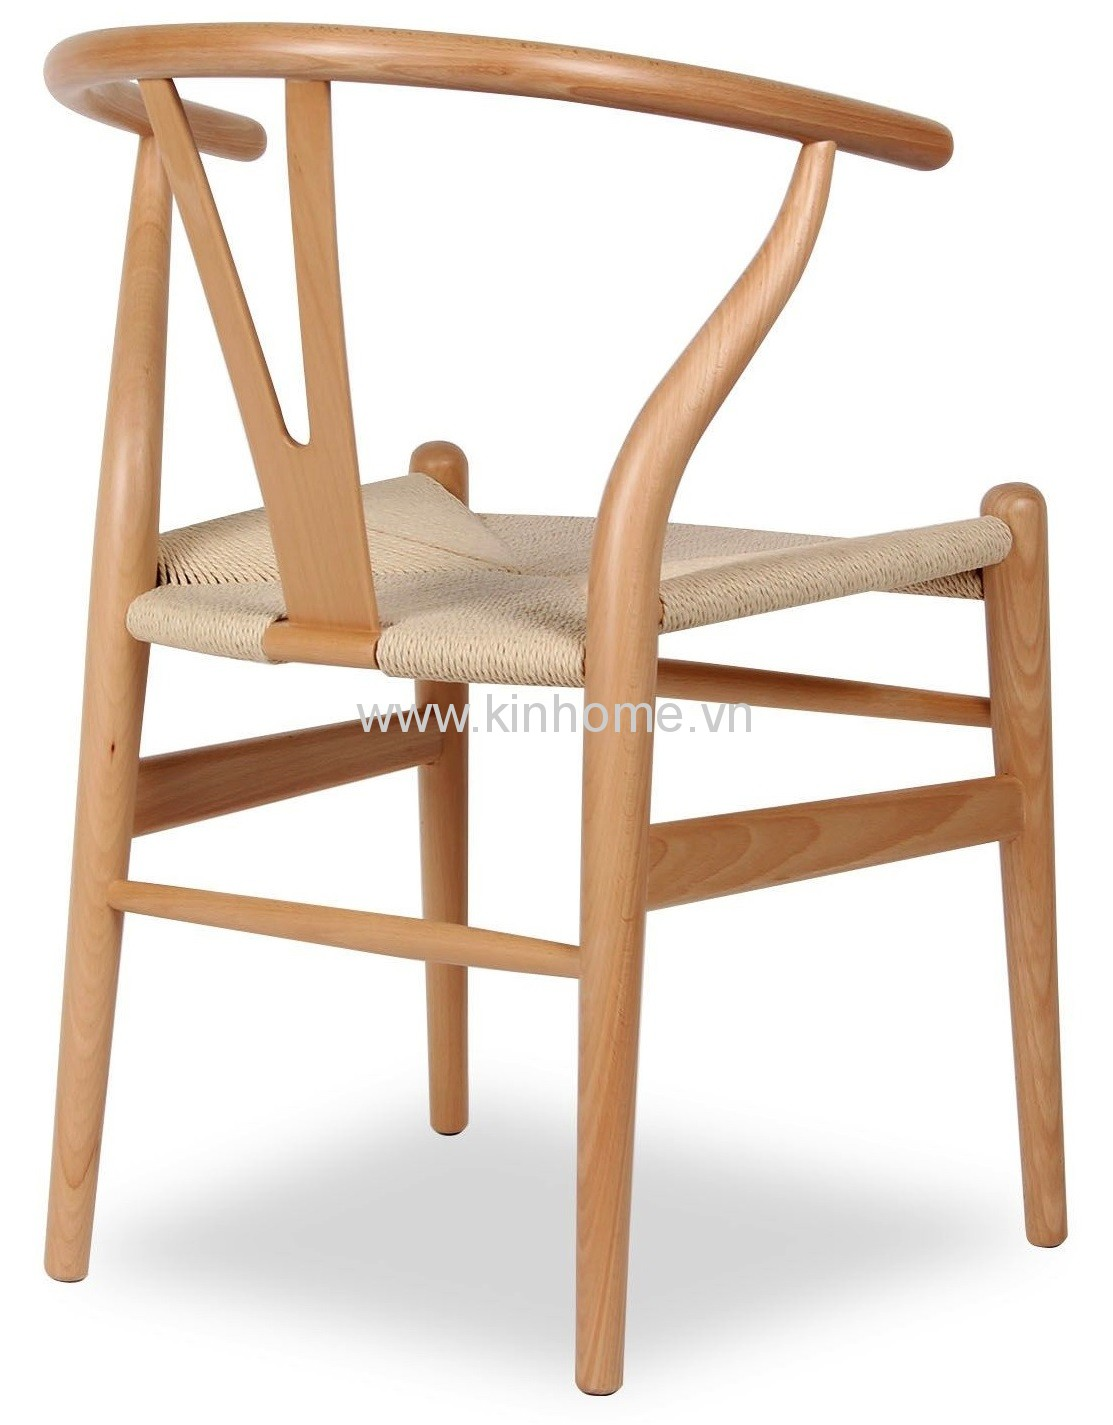 GHẾ WISHBONE | WISHBONE CHAIR